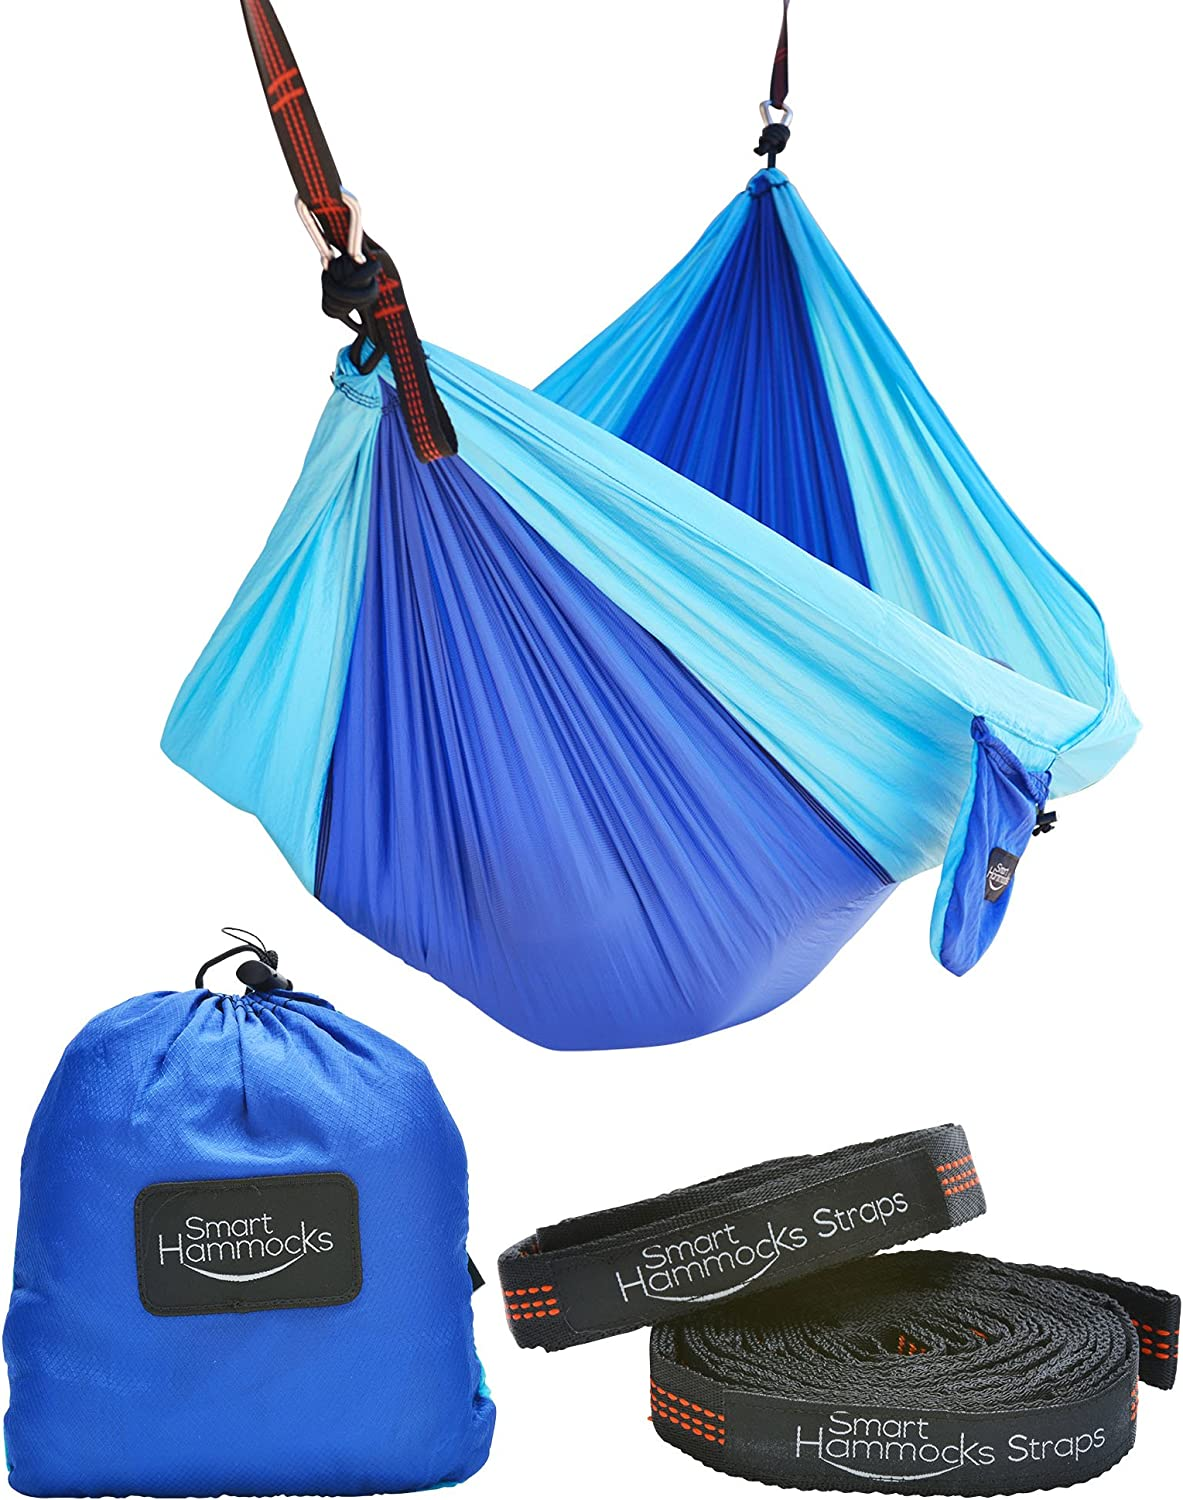 Smart Hammocks Camping Hammock Plus Double Hanging Suspension Tree Straps and Carabiners Portable Parachute Folding Light Weight Gear – Great for Hiking, Backpacking, Kayaking, Indoor and Outdoor